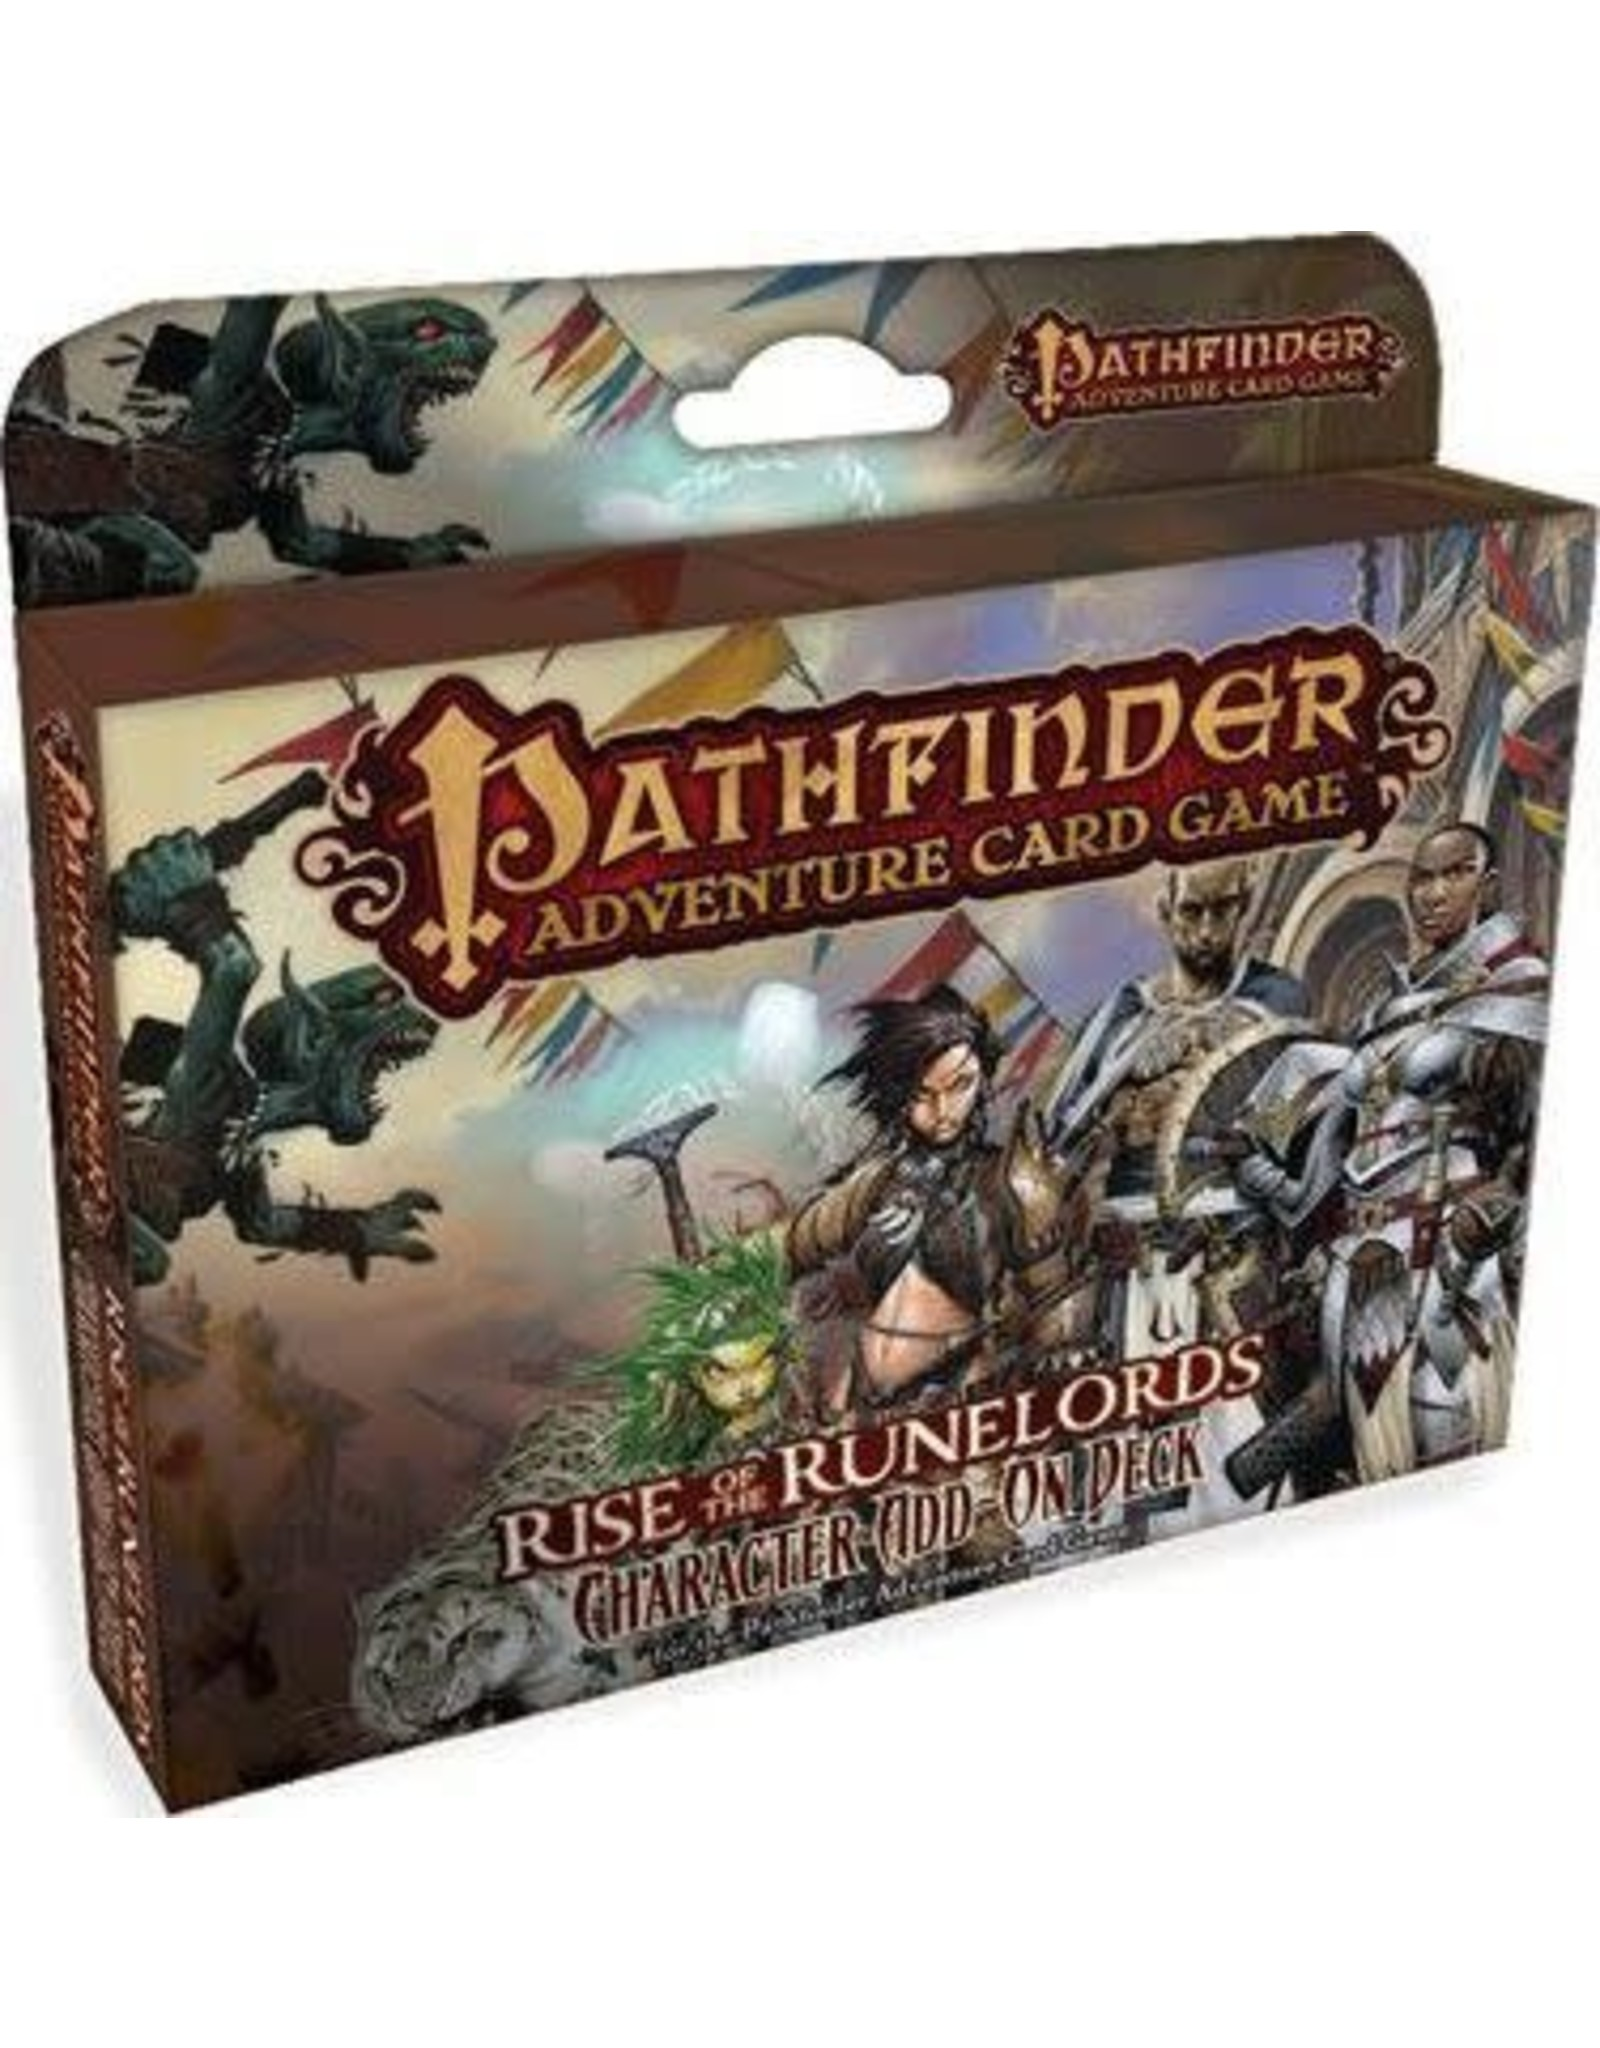 Pathfinder Adventure Card Game Rise of the Runelords Character Add On Deck